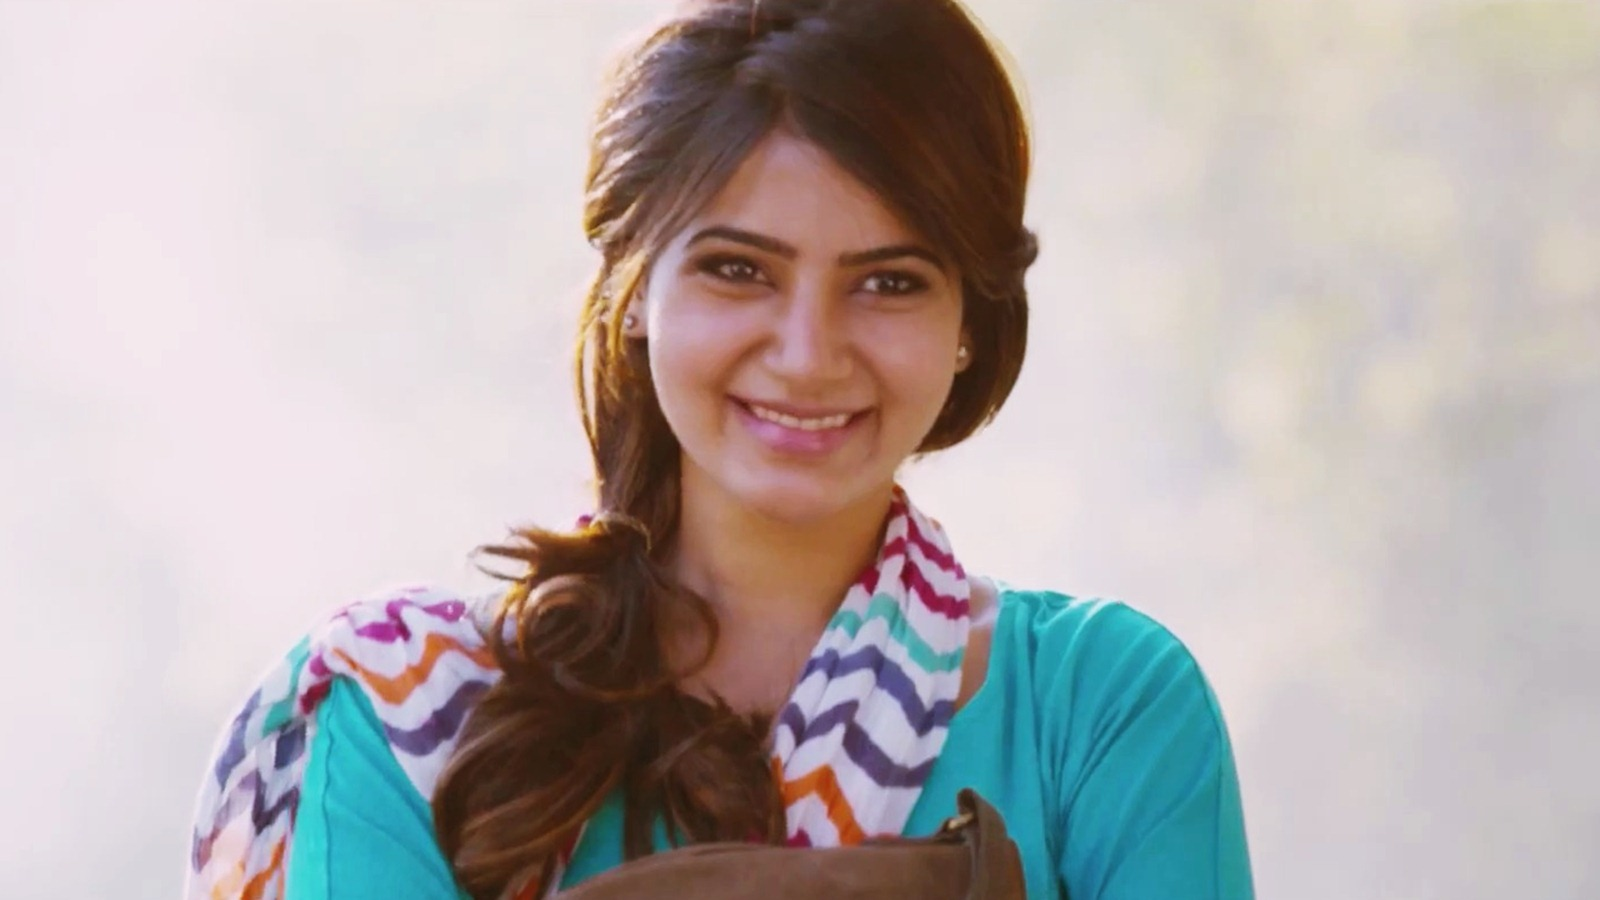 Samantha Hd Wallpapers: Anjaan - Samantha HD Wallpapers